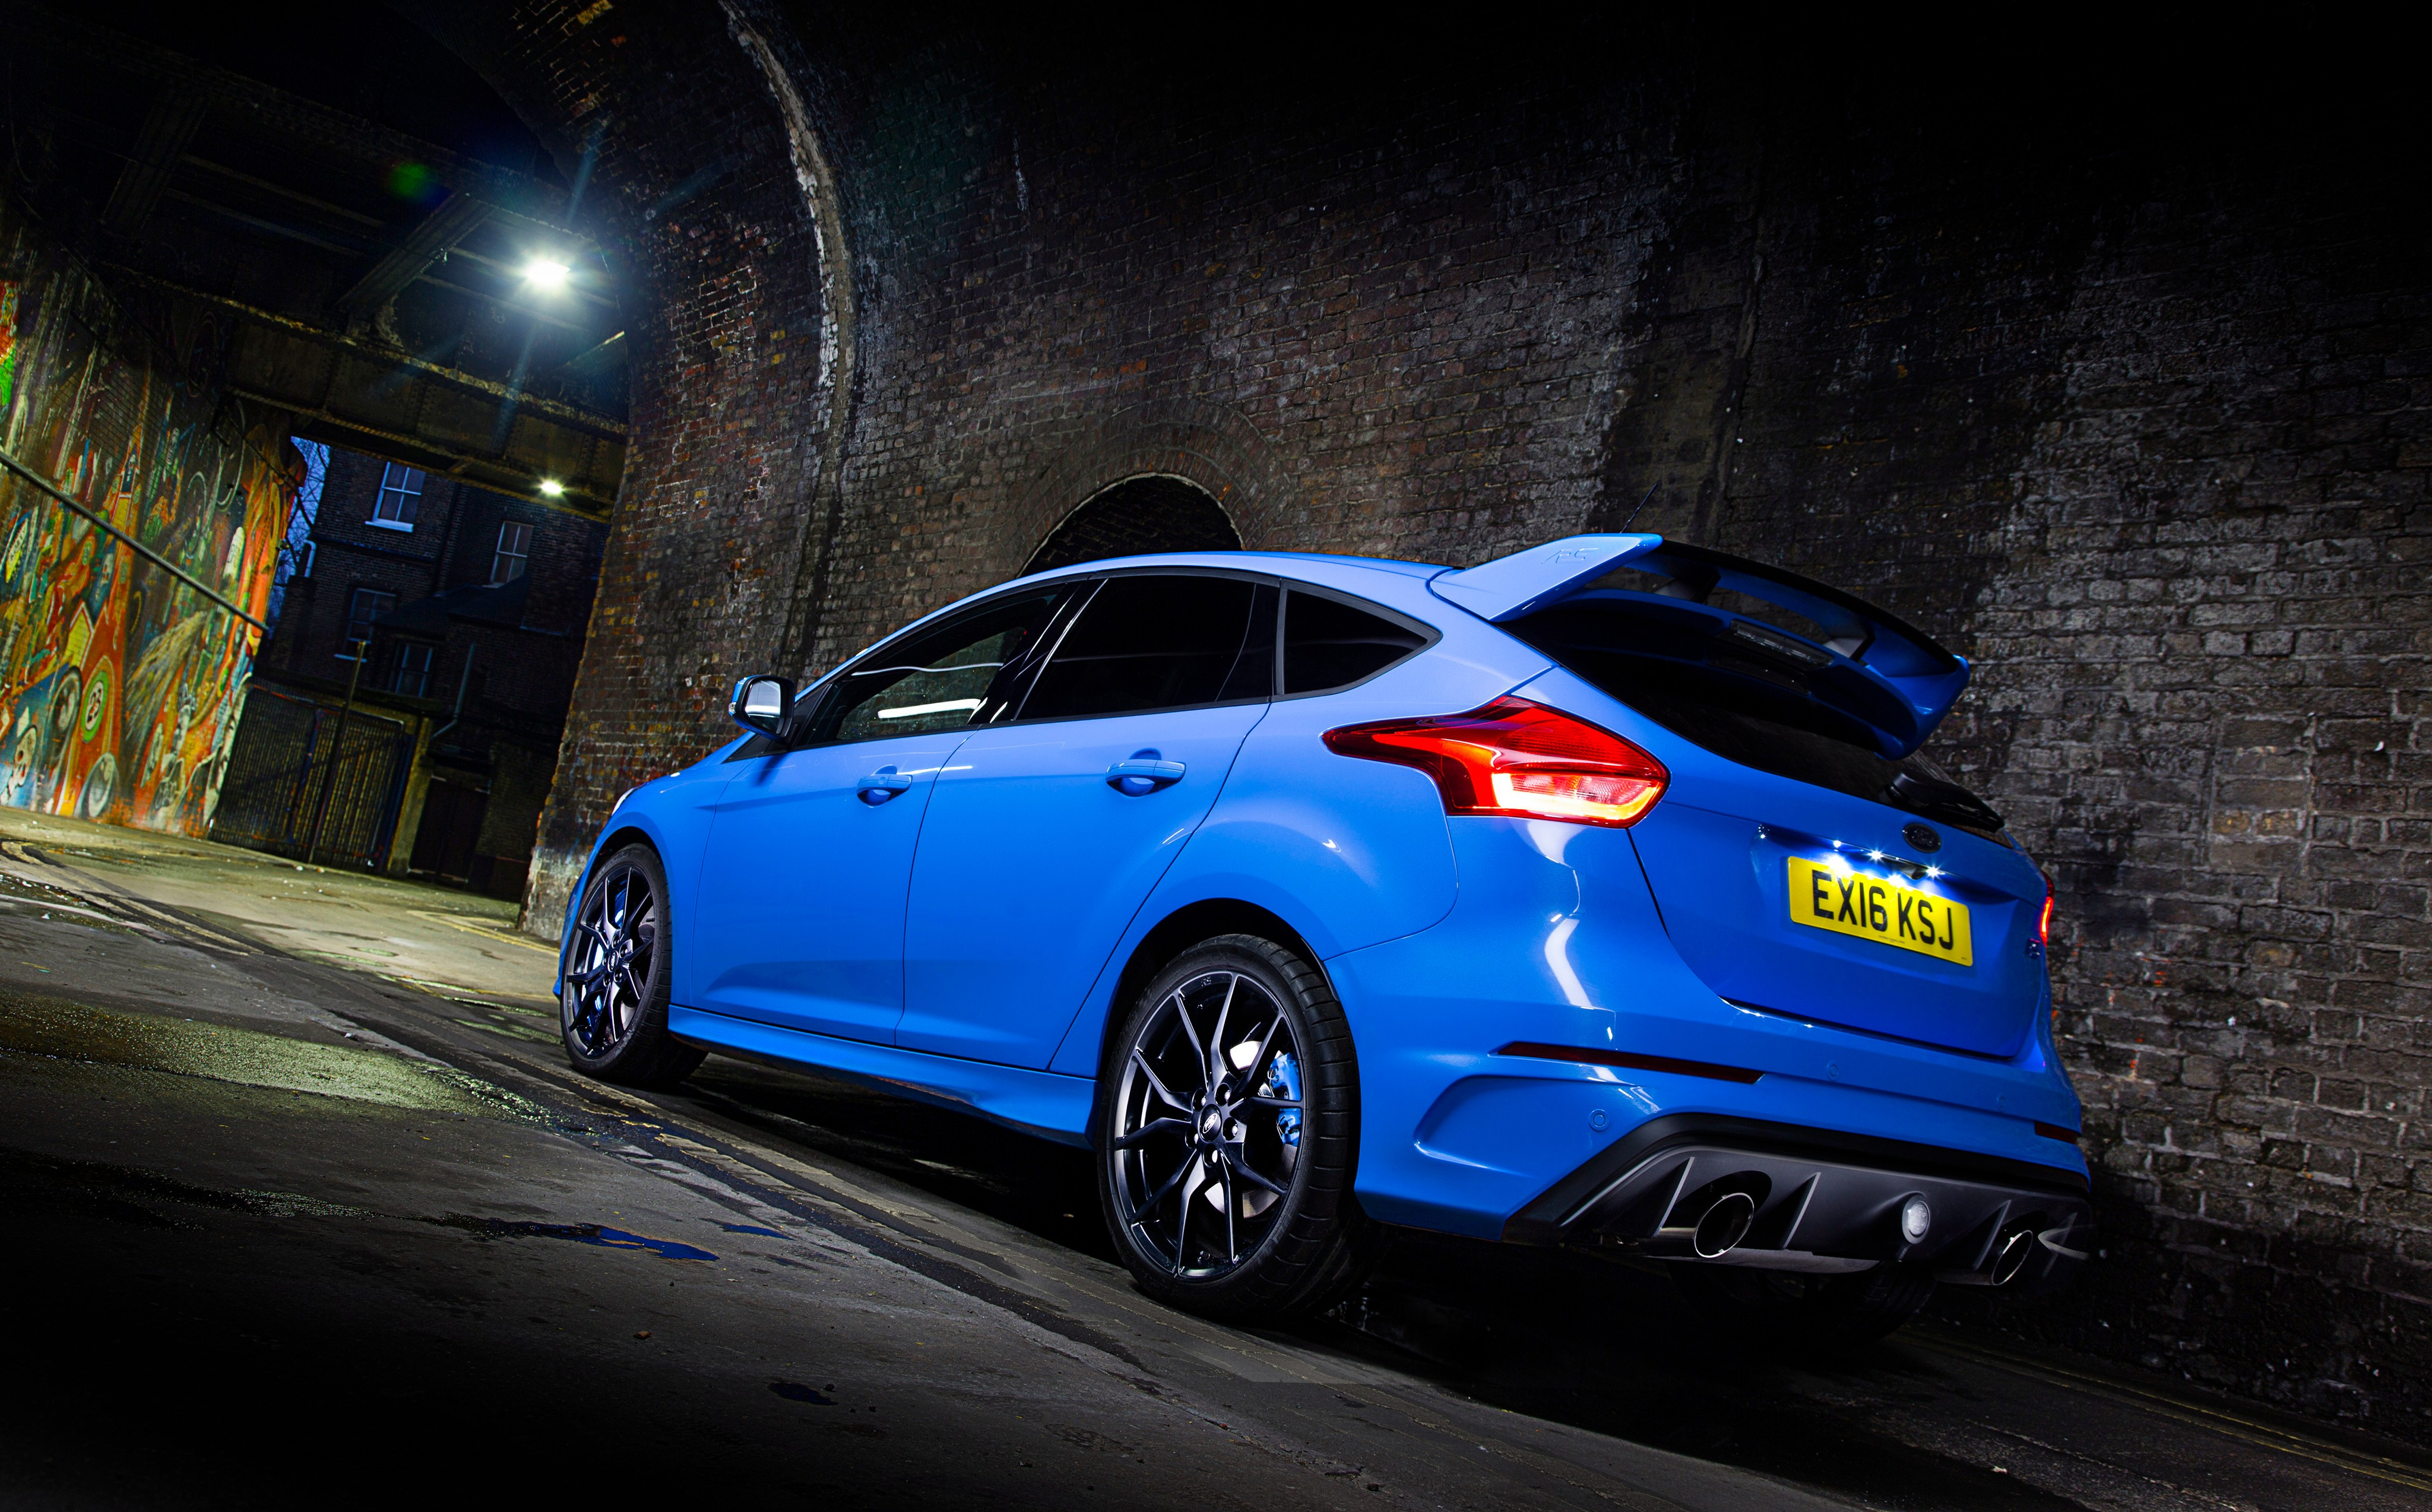 wallpaper ford focus rs hatchback blue night cars bikes 10175. Black Bedroom Furniture Sets. Home Design Ideas